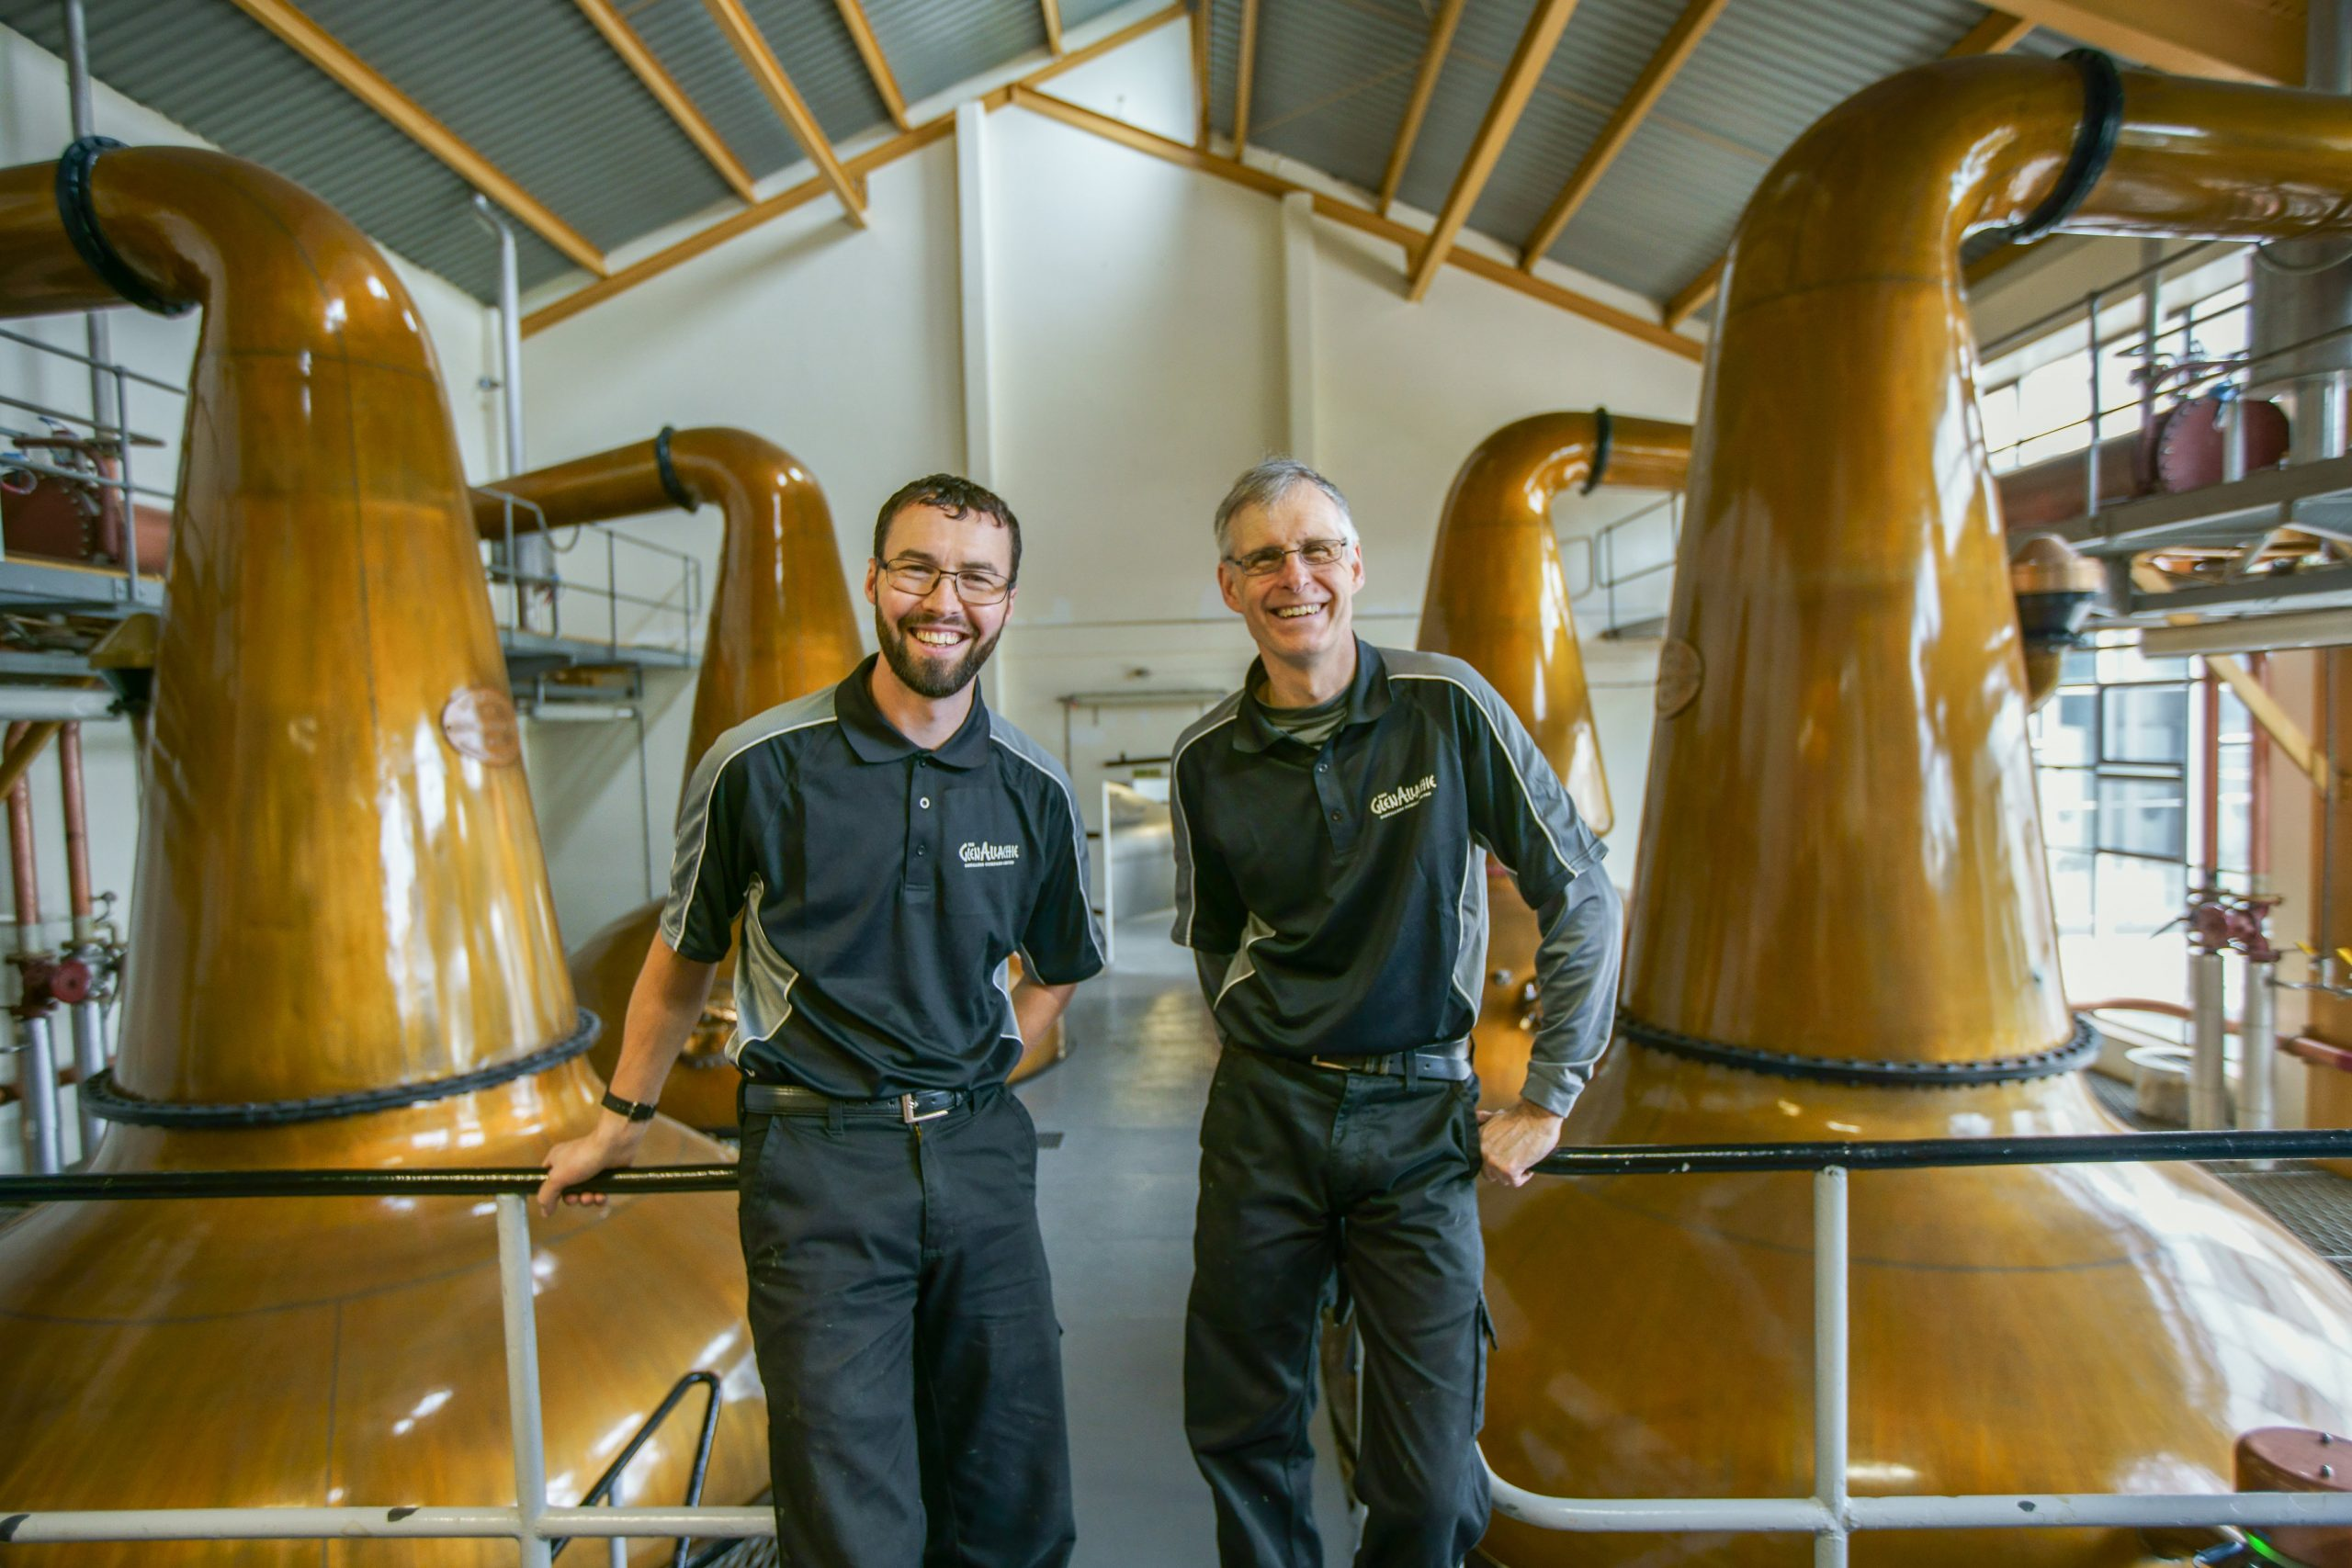 The GlenAllachie Distillers - Mike Duncan and Philip